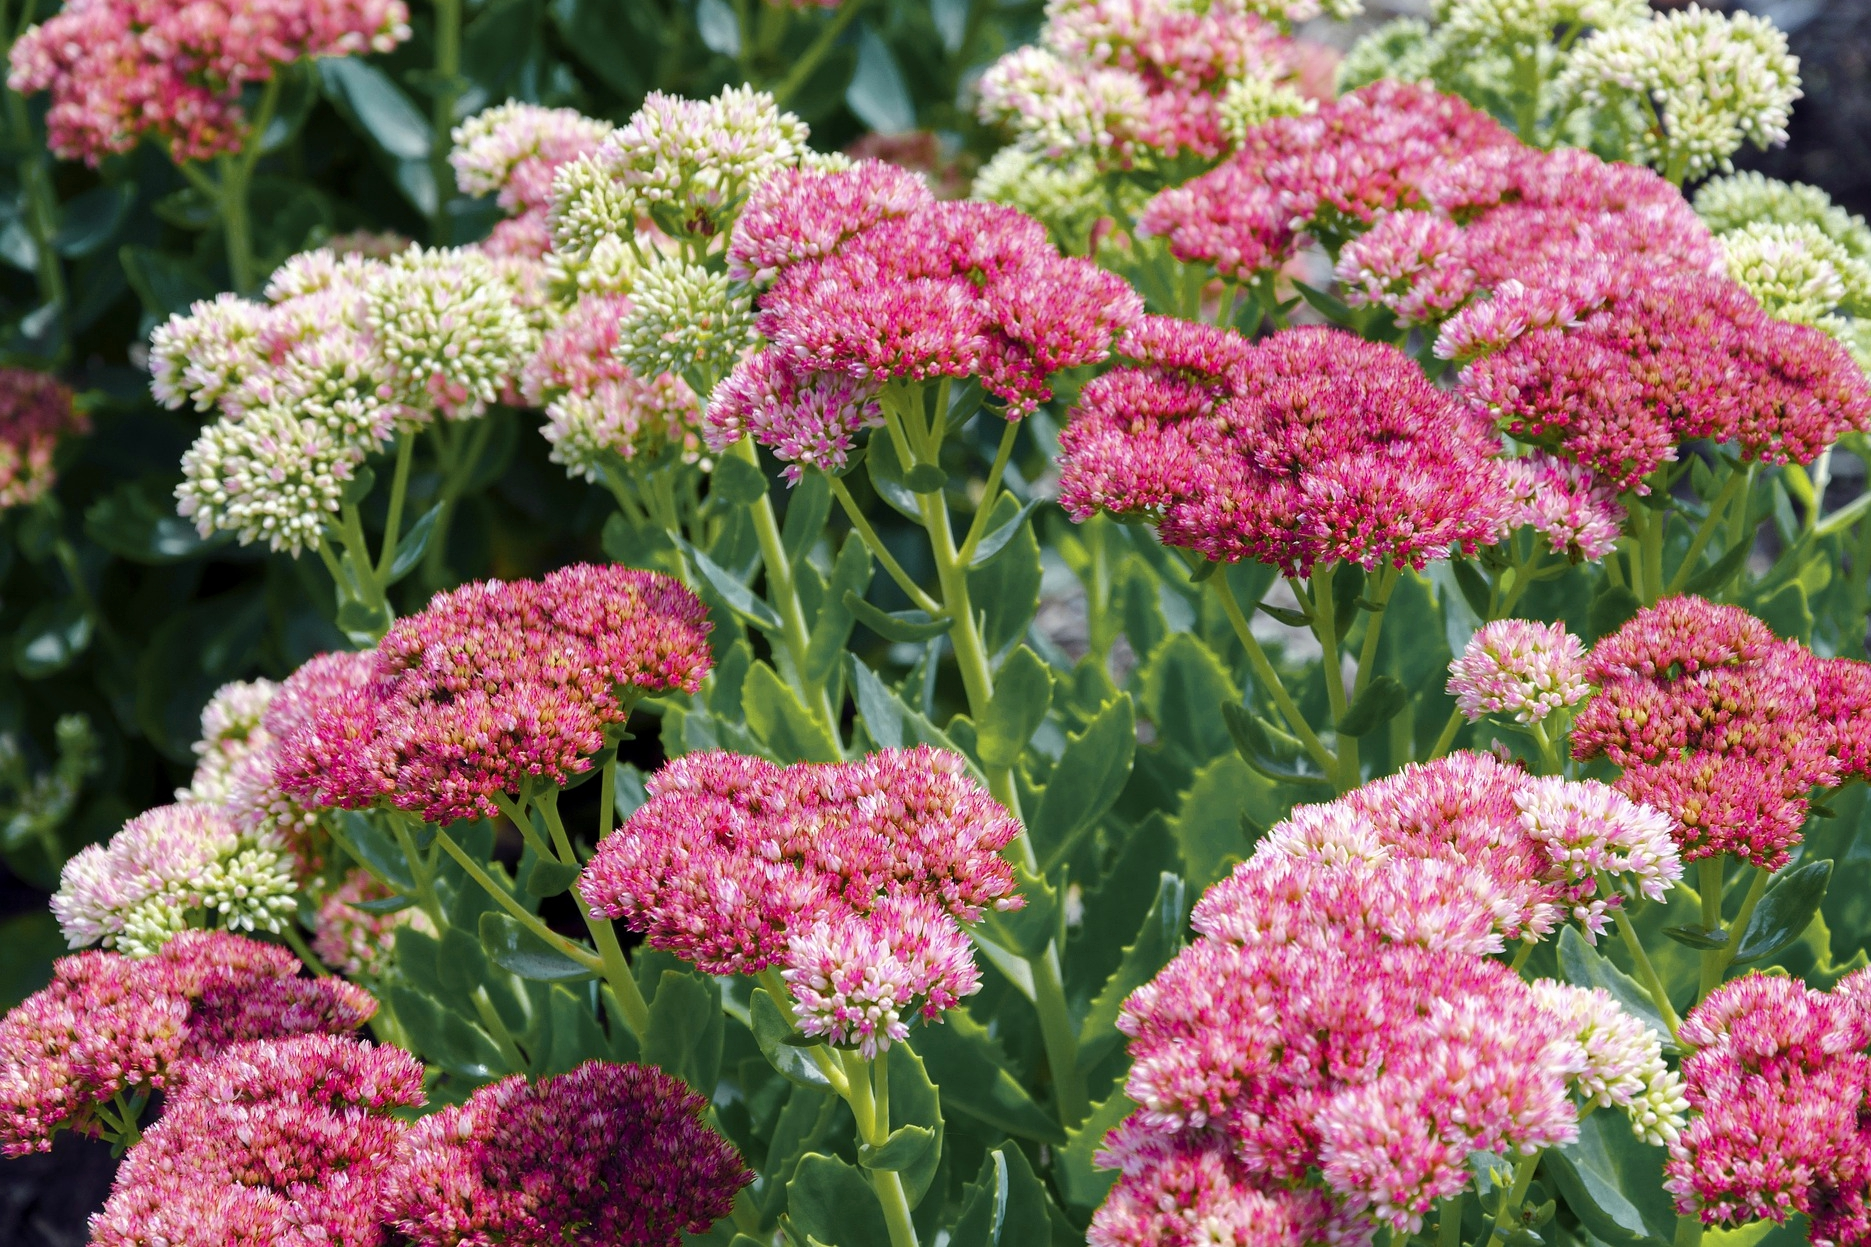 Sedum How To Plant Grow And Care For Sedum Plants The Old